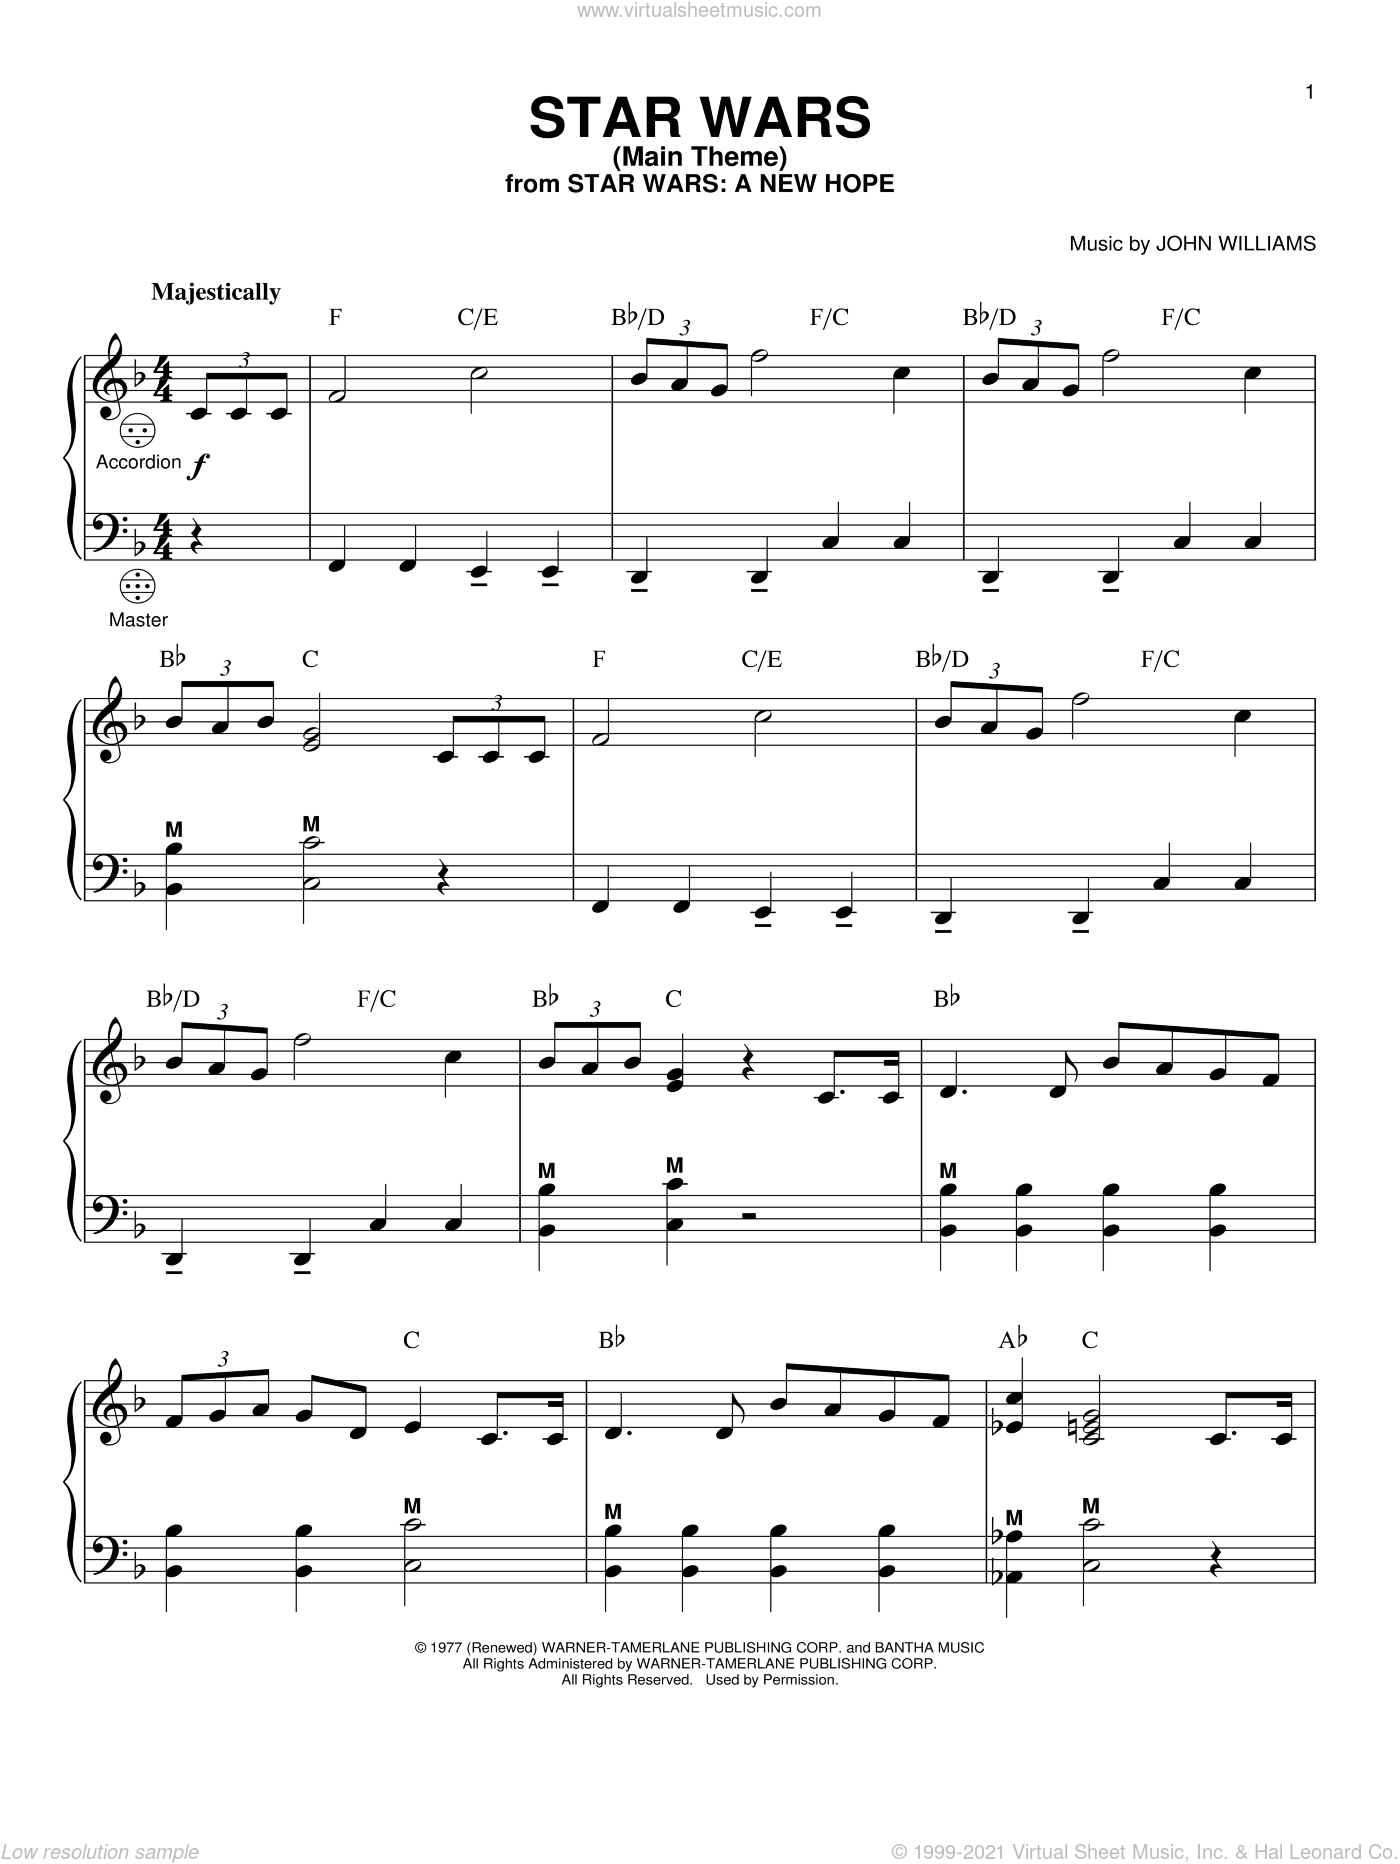 Star Wars (Main Theme) sheet music for accordion by John Williams, intermediate skill level